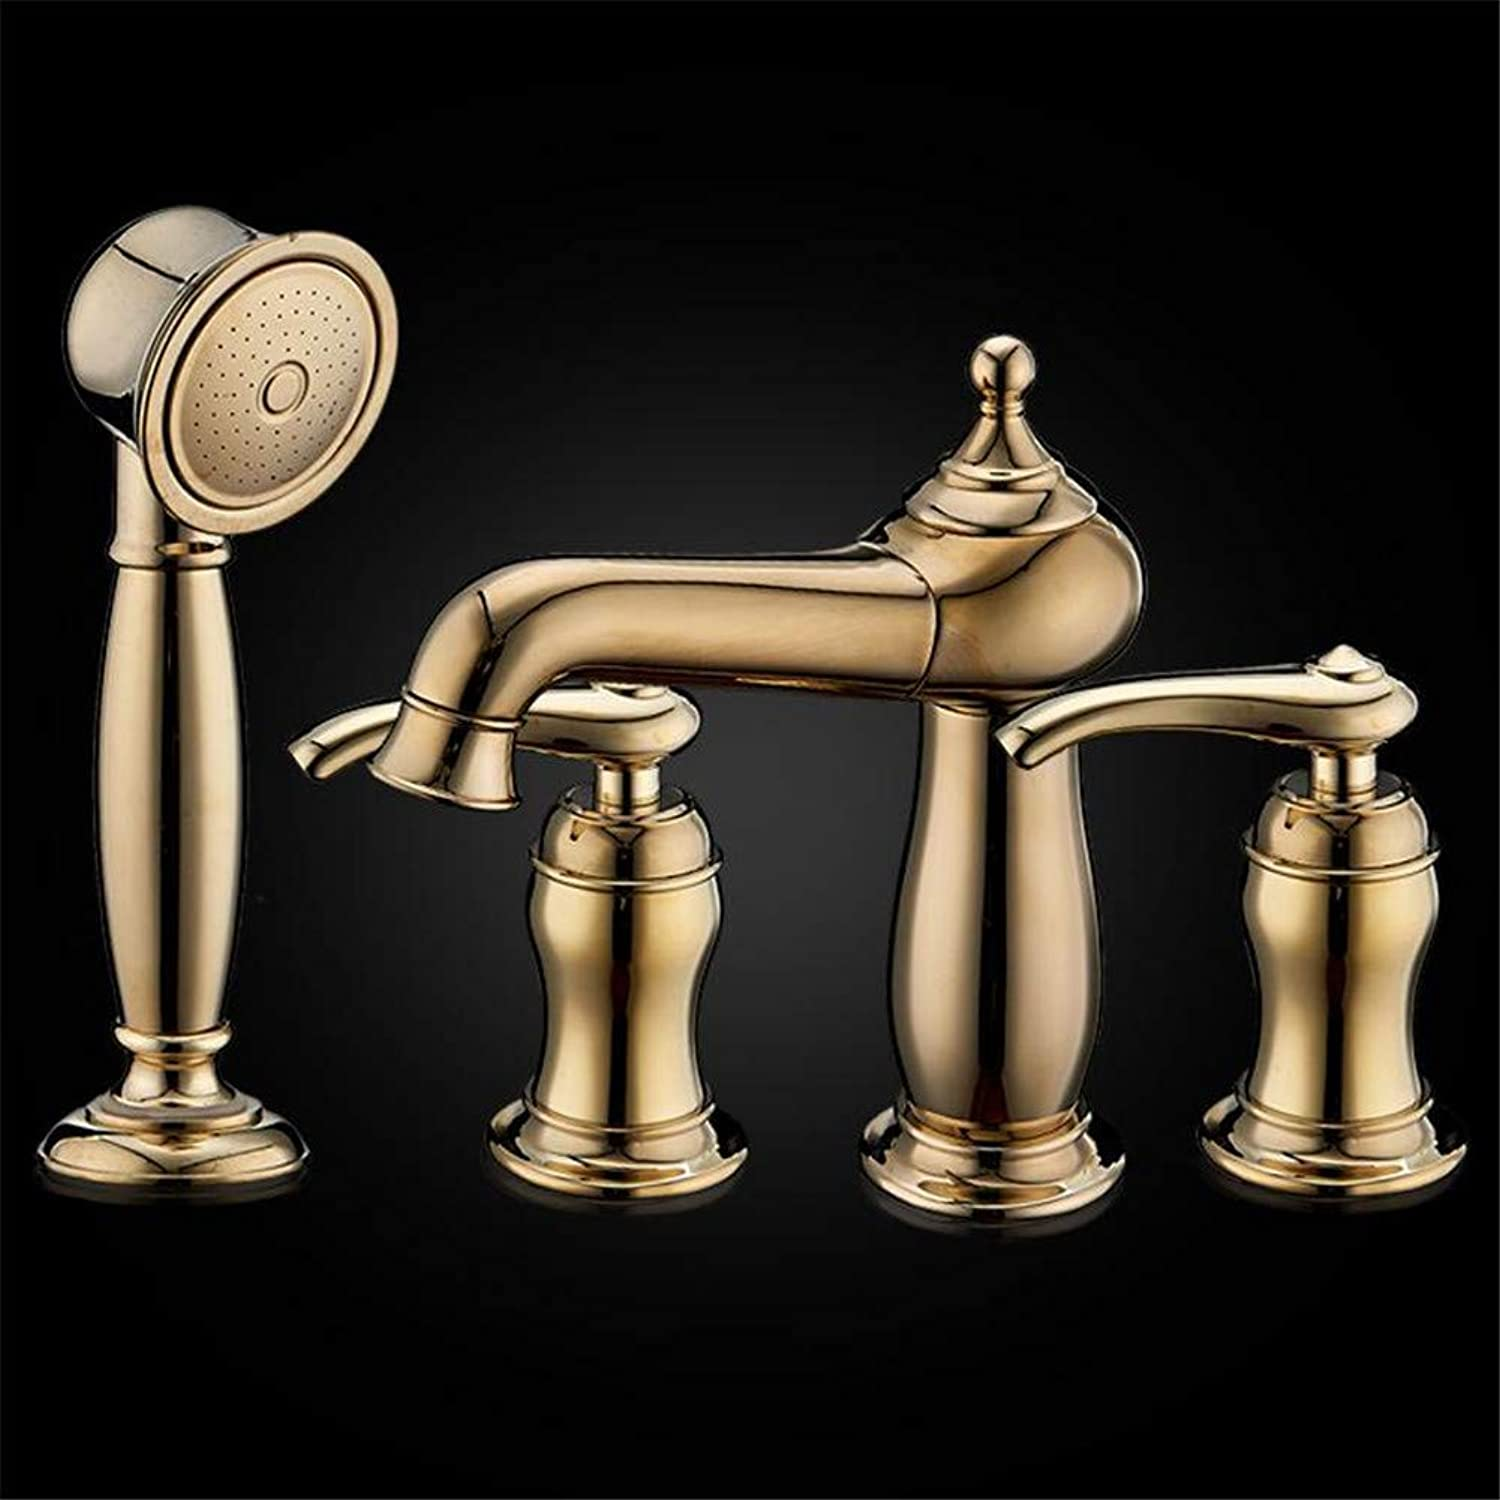 YAWEDA Eledtroplate gold Kitchen Faucets Brass Classic Four Holes Basin Faucet Pull Out 360 redata Sink Taps Hot Cold Deck Mounted,gold